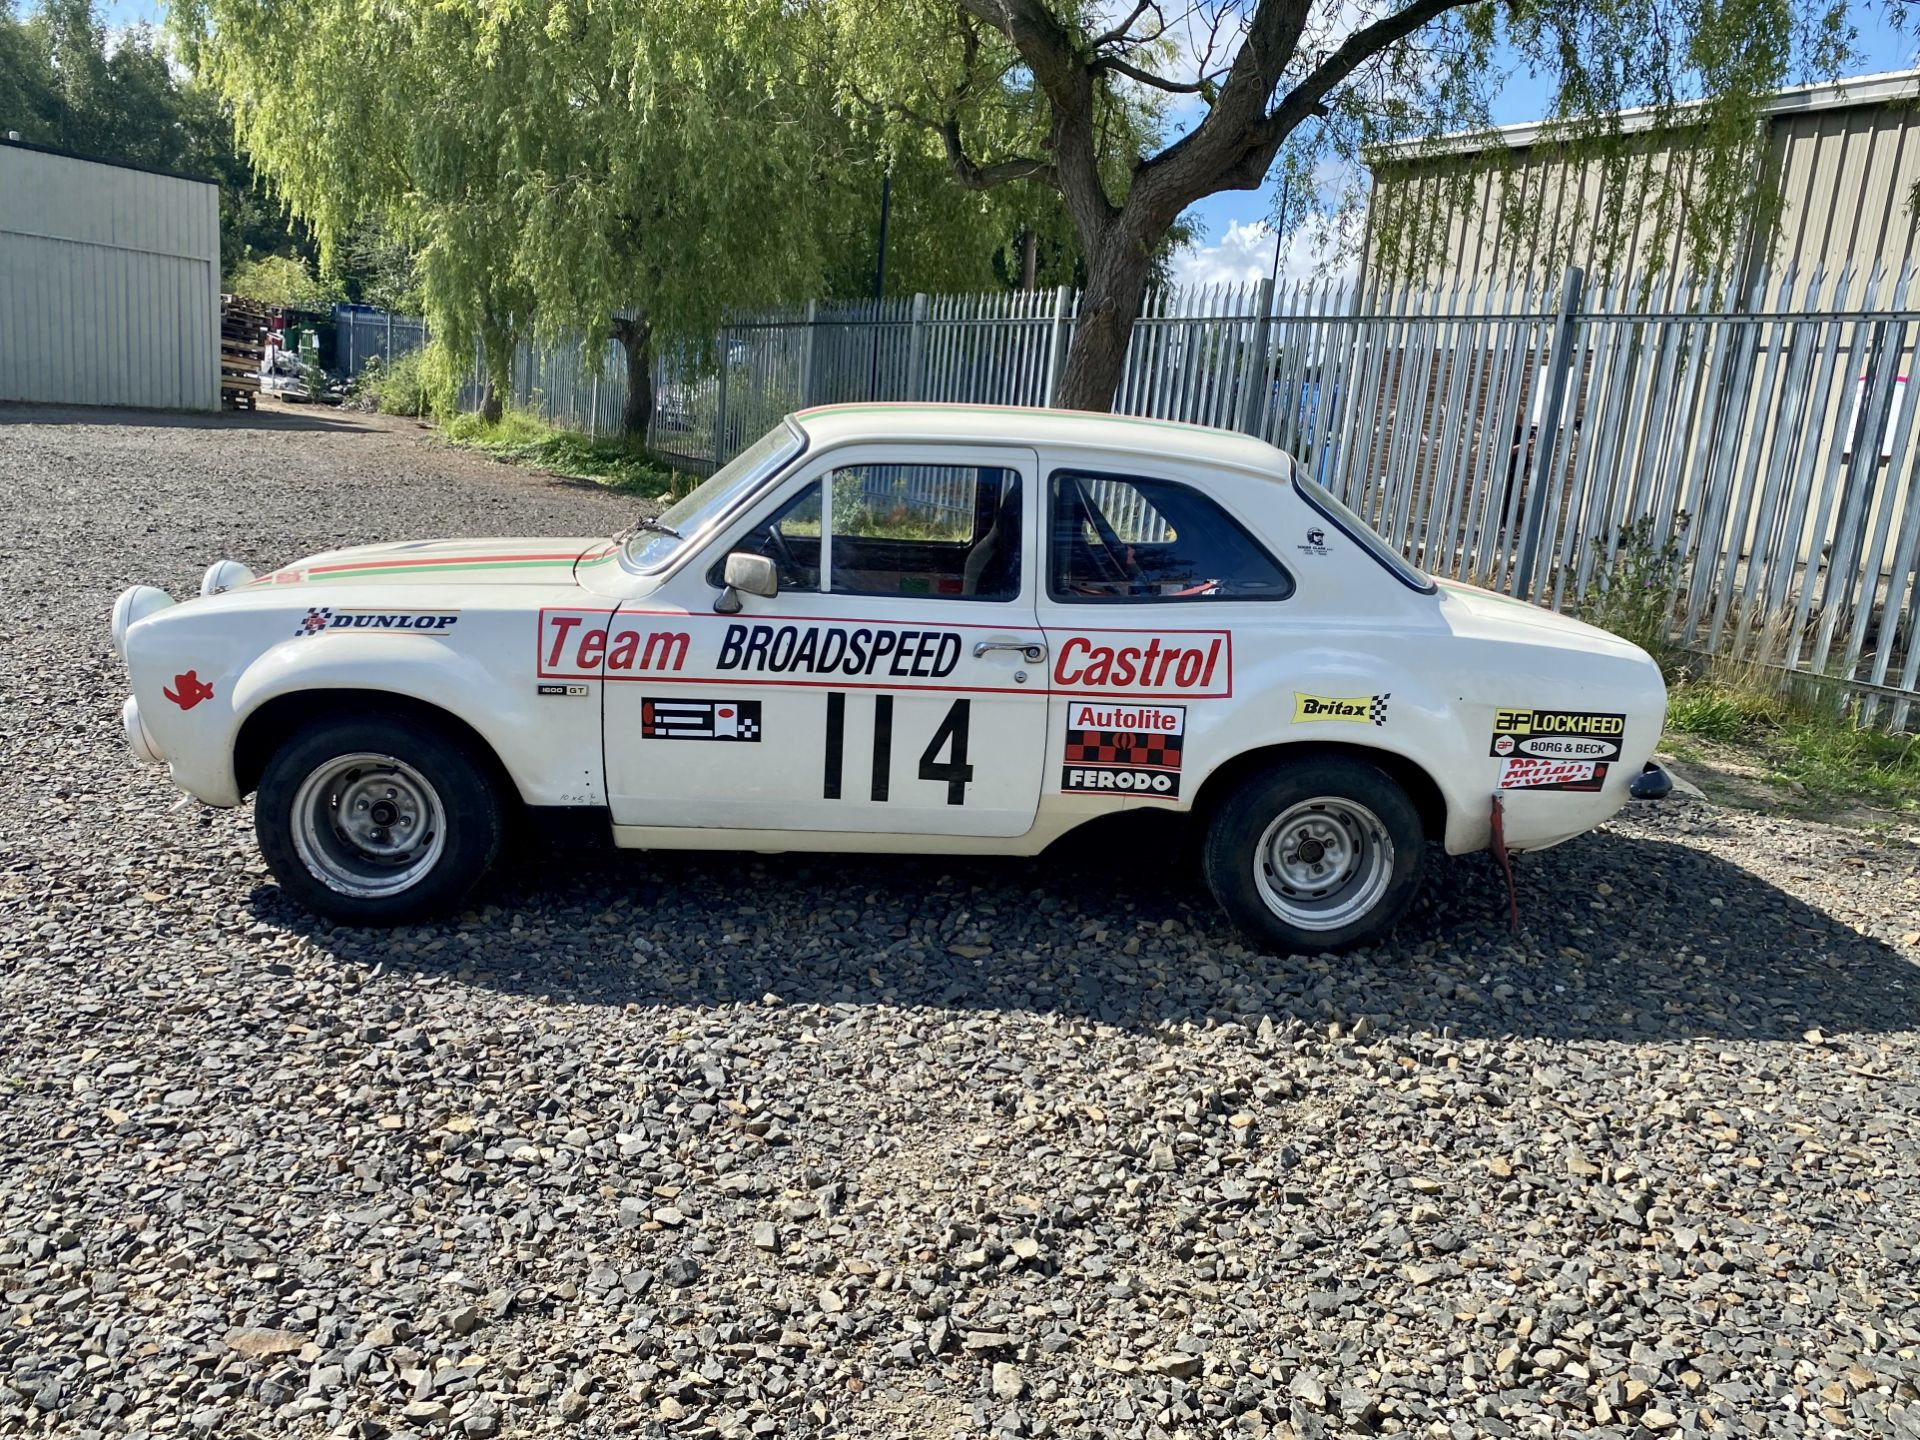 Ford Escort Mexico - Image 22 of 51